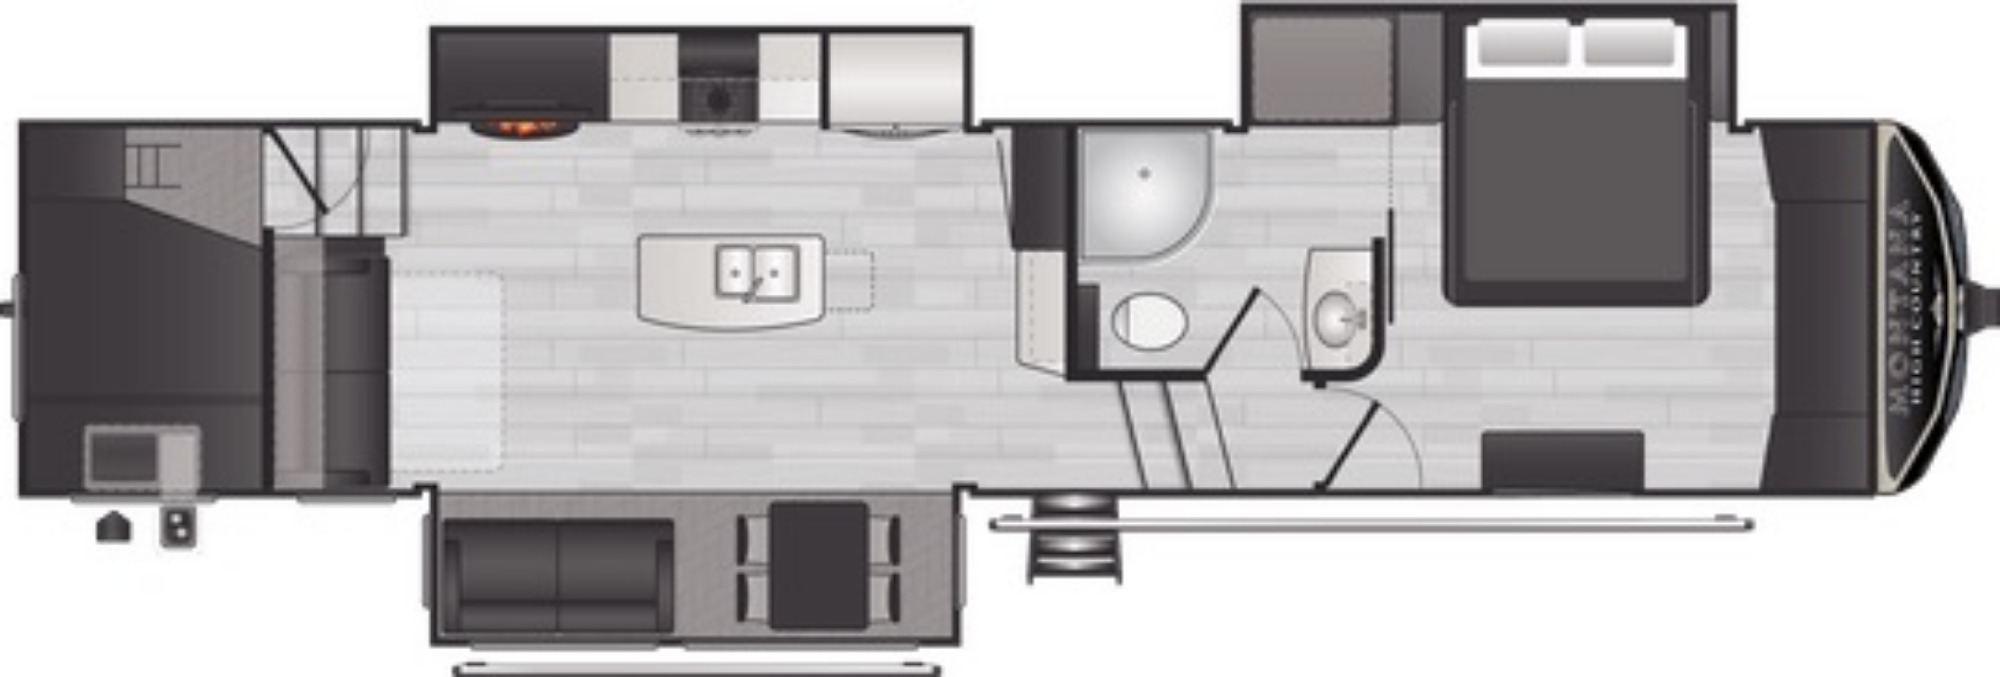 View Floor Plan for 2021 KEYSTONE MONTANA HIGH COUNTRY 351BH